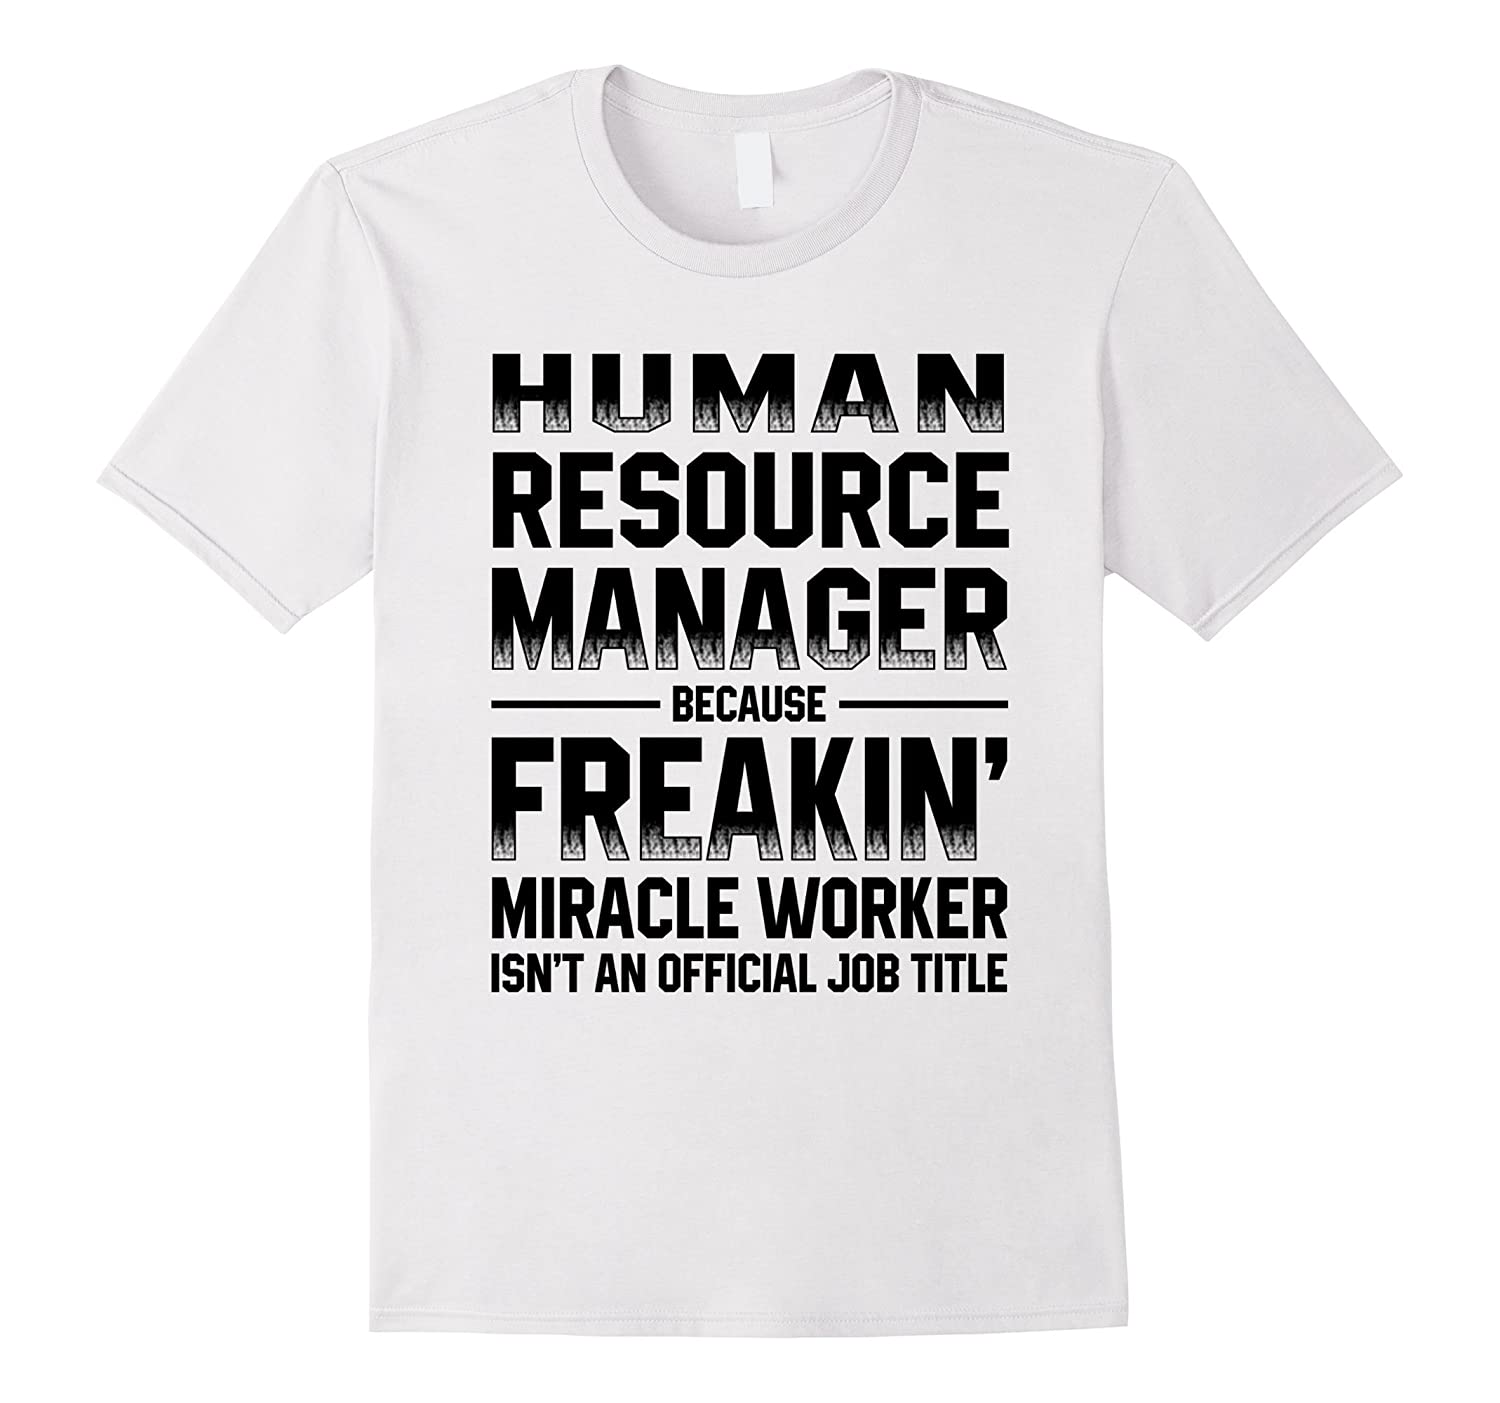 54dc5f9723 Human Resource Manager Because Freakin T Shirts Funny-PL – theteejob